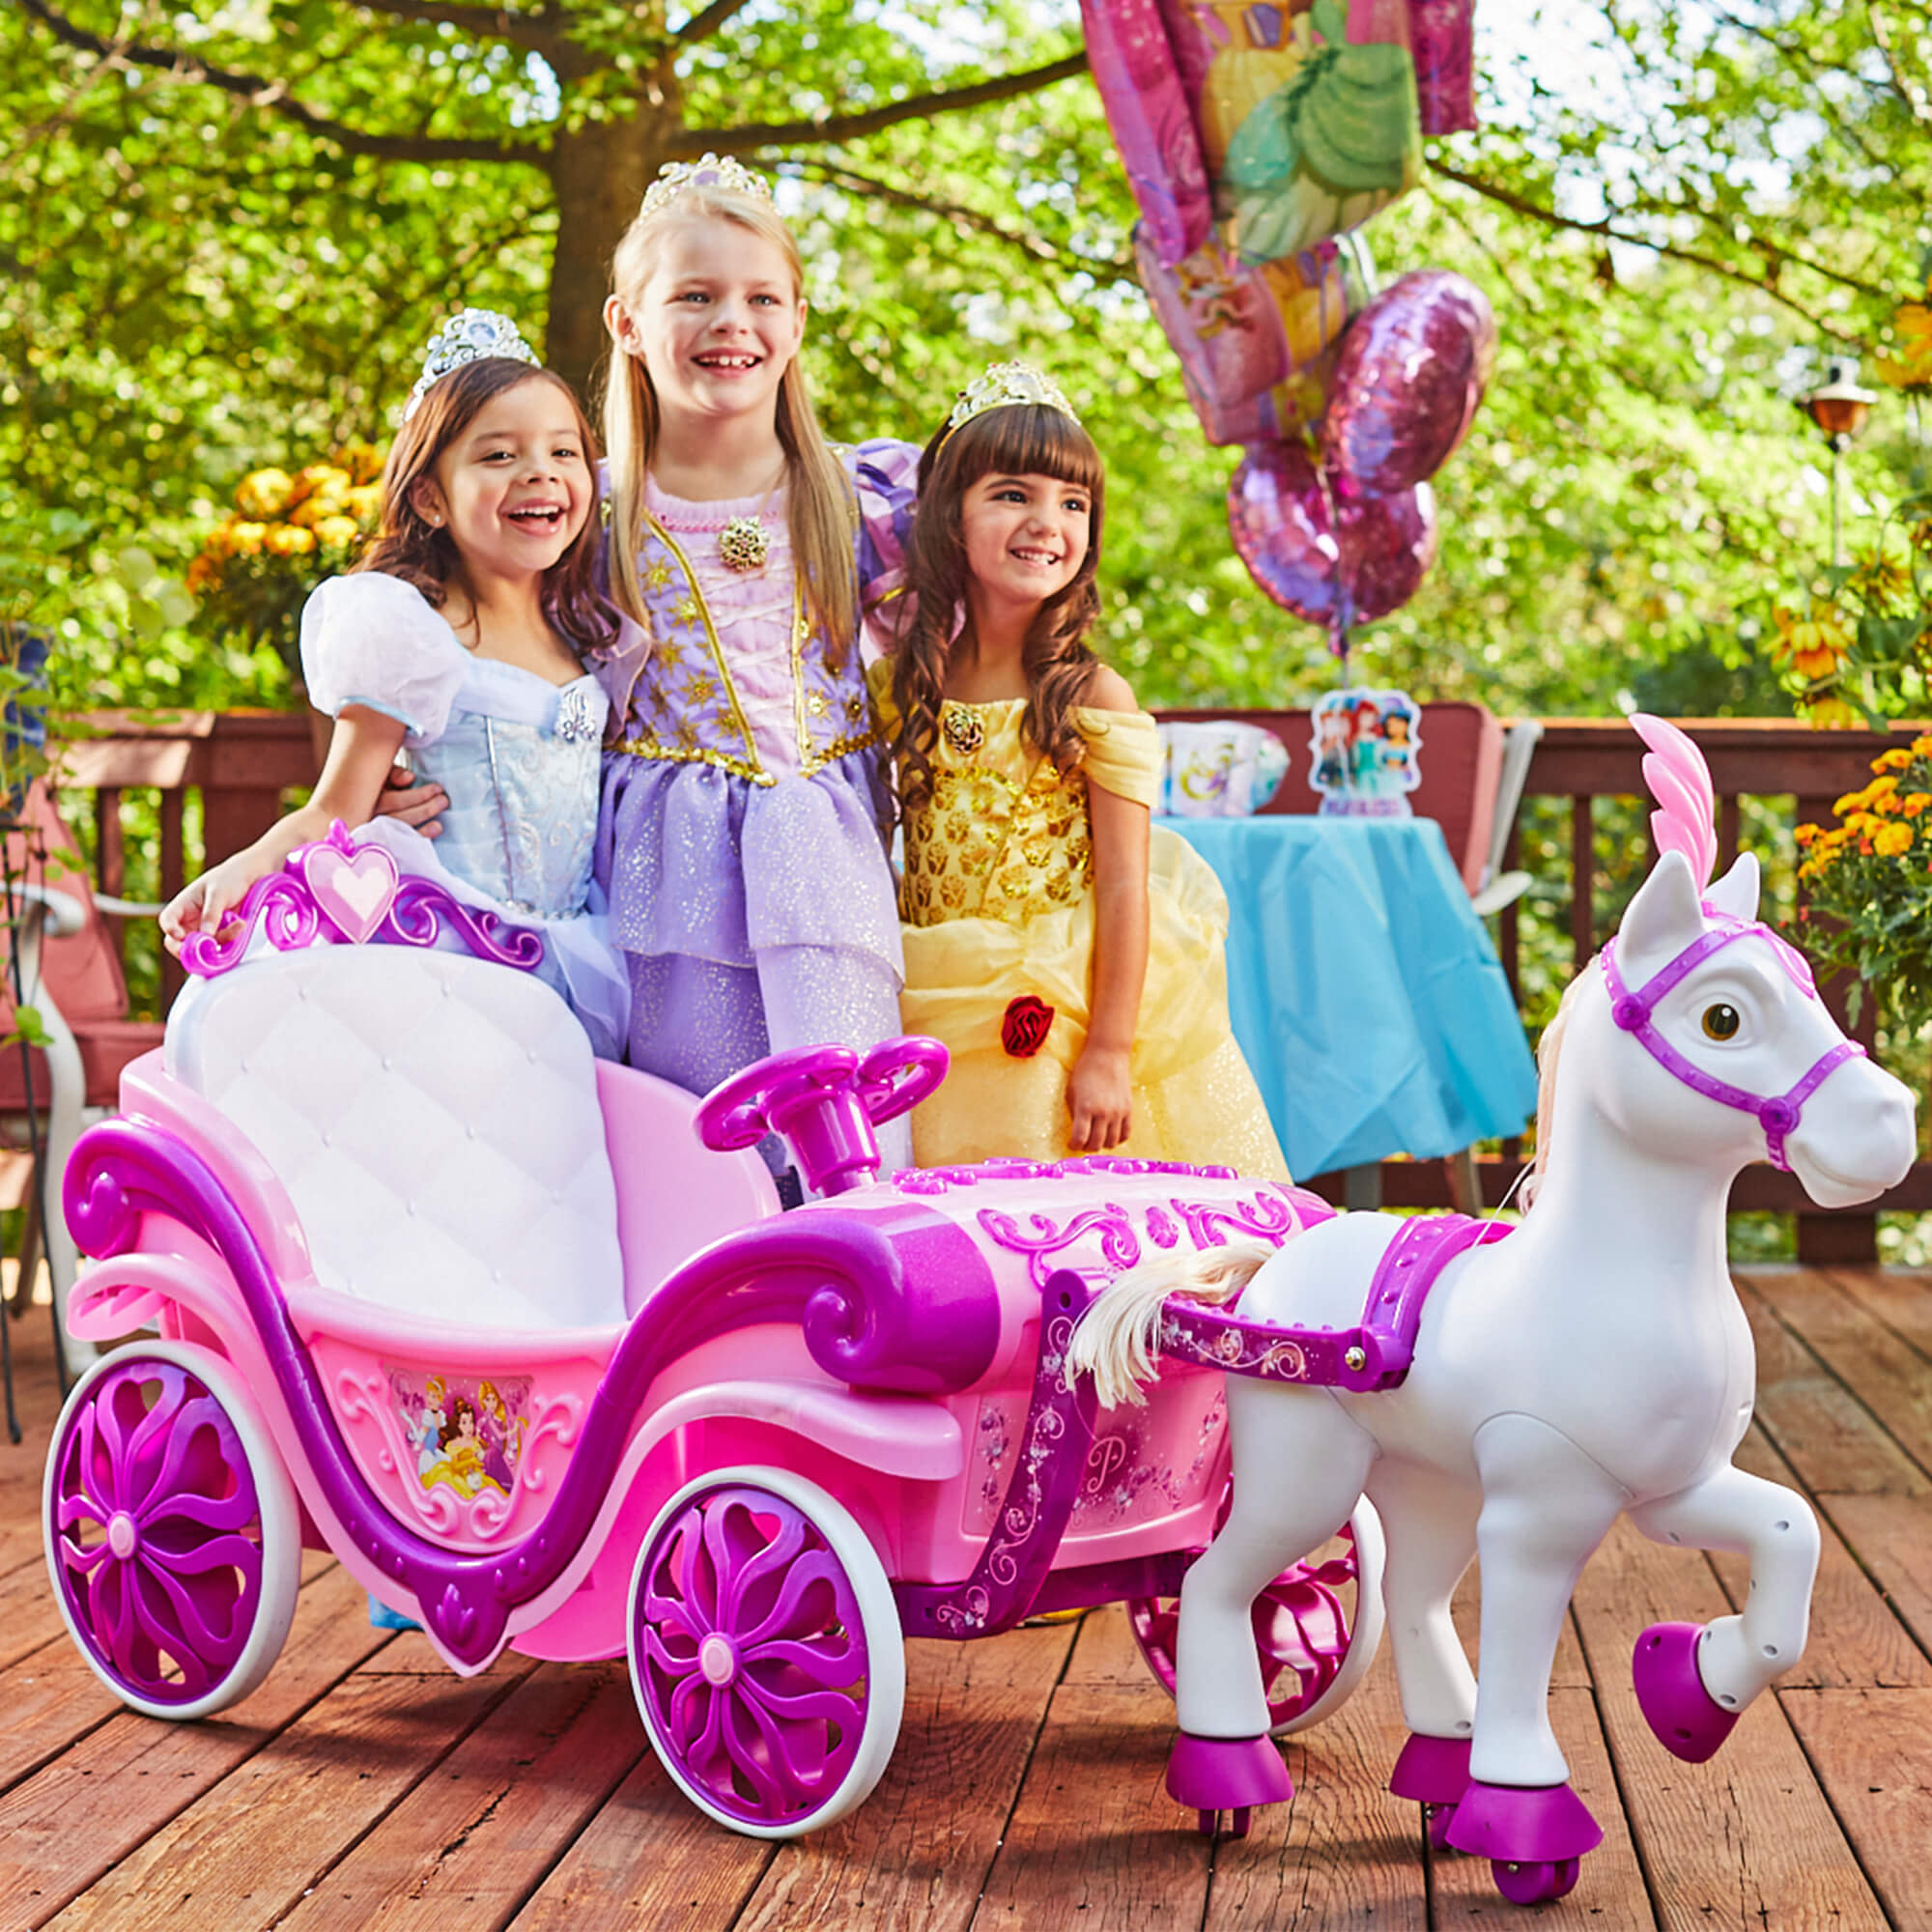 Toys On Sale - Discount And Cheap Kids' Toys